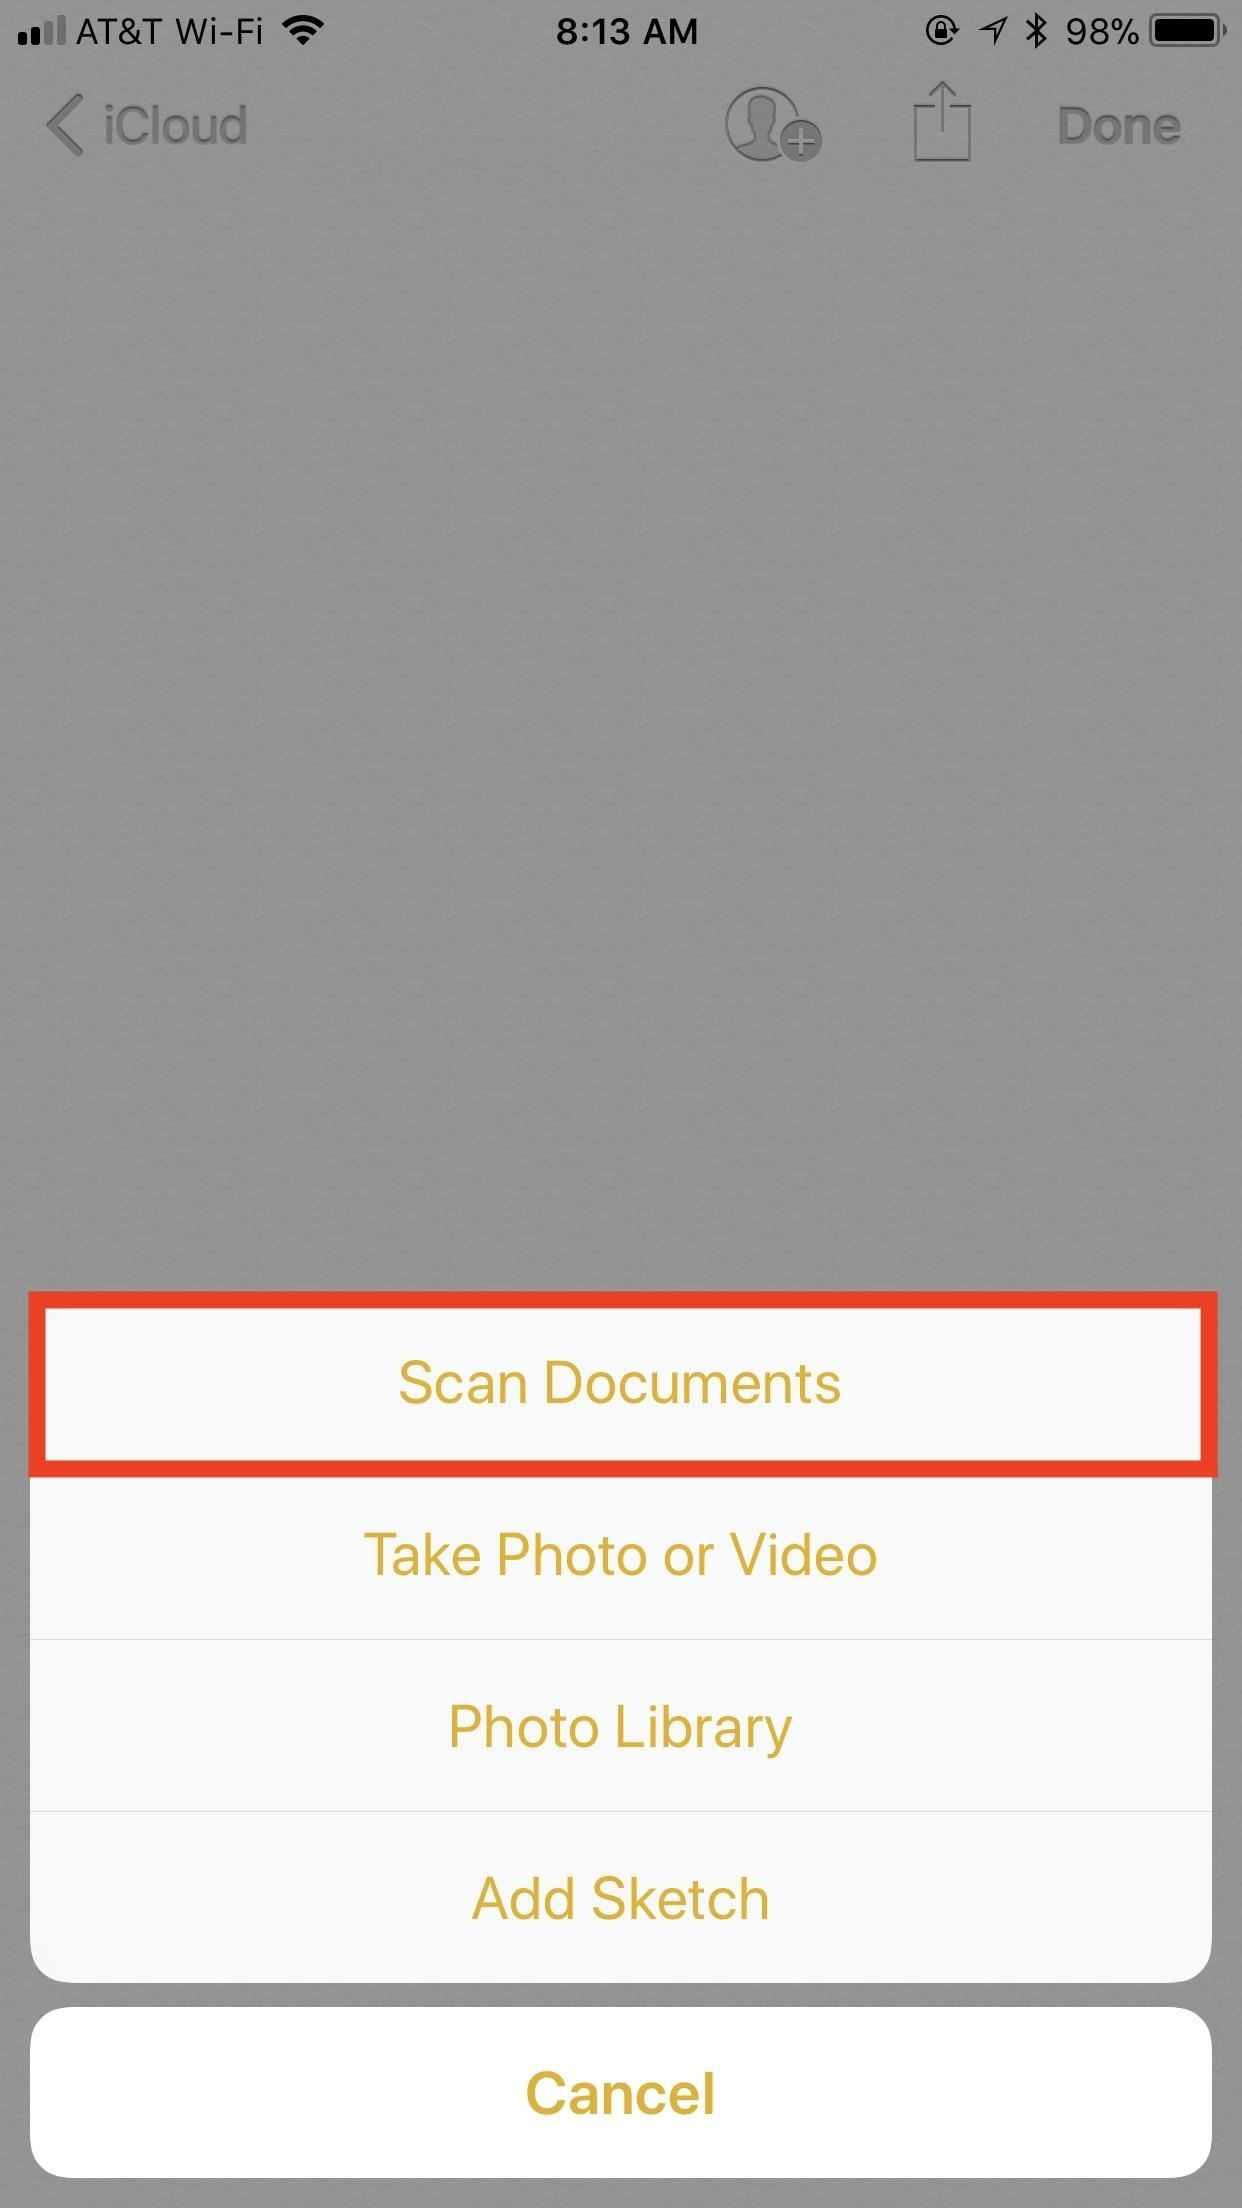 Notes 101: How to Scan, Edit & Share Documents Right Inside